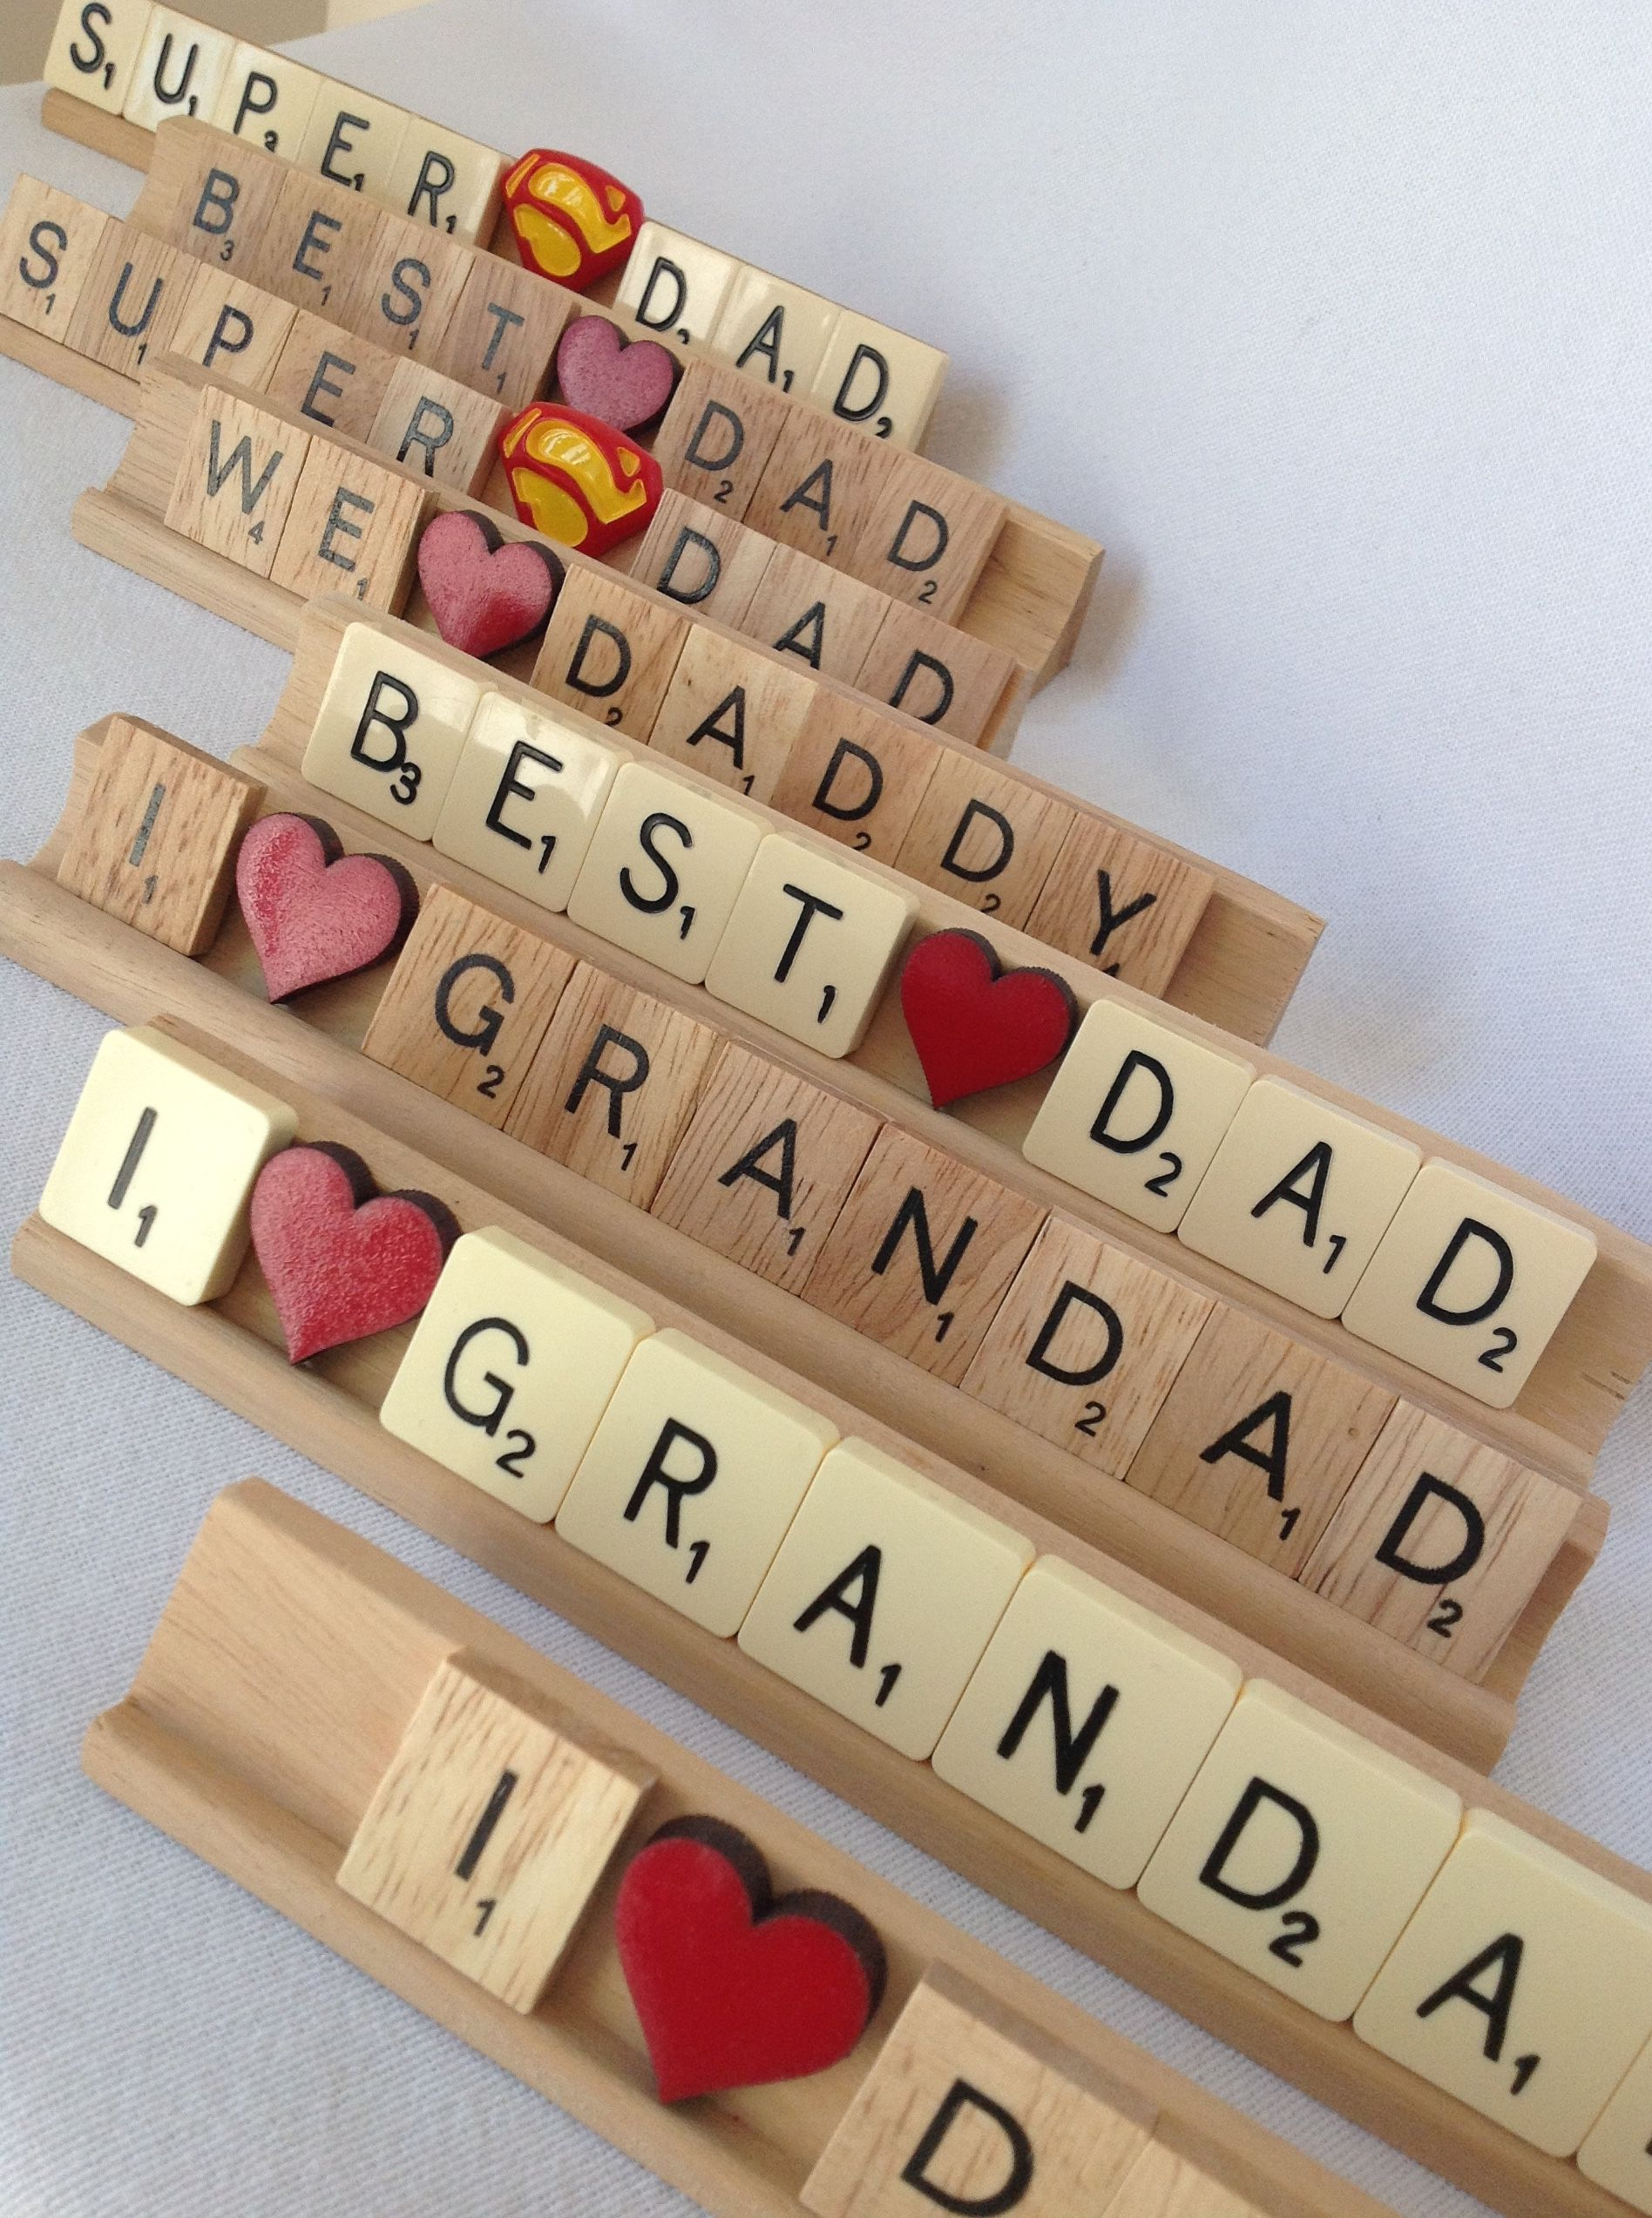 father s day dads birthday grandad vintage new wood scrabble www